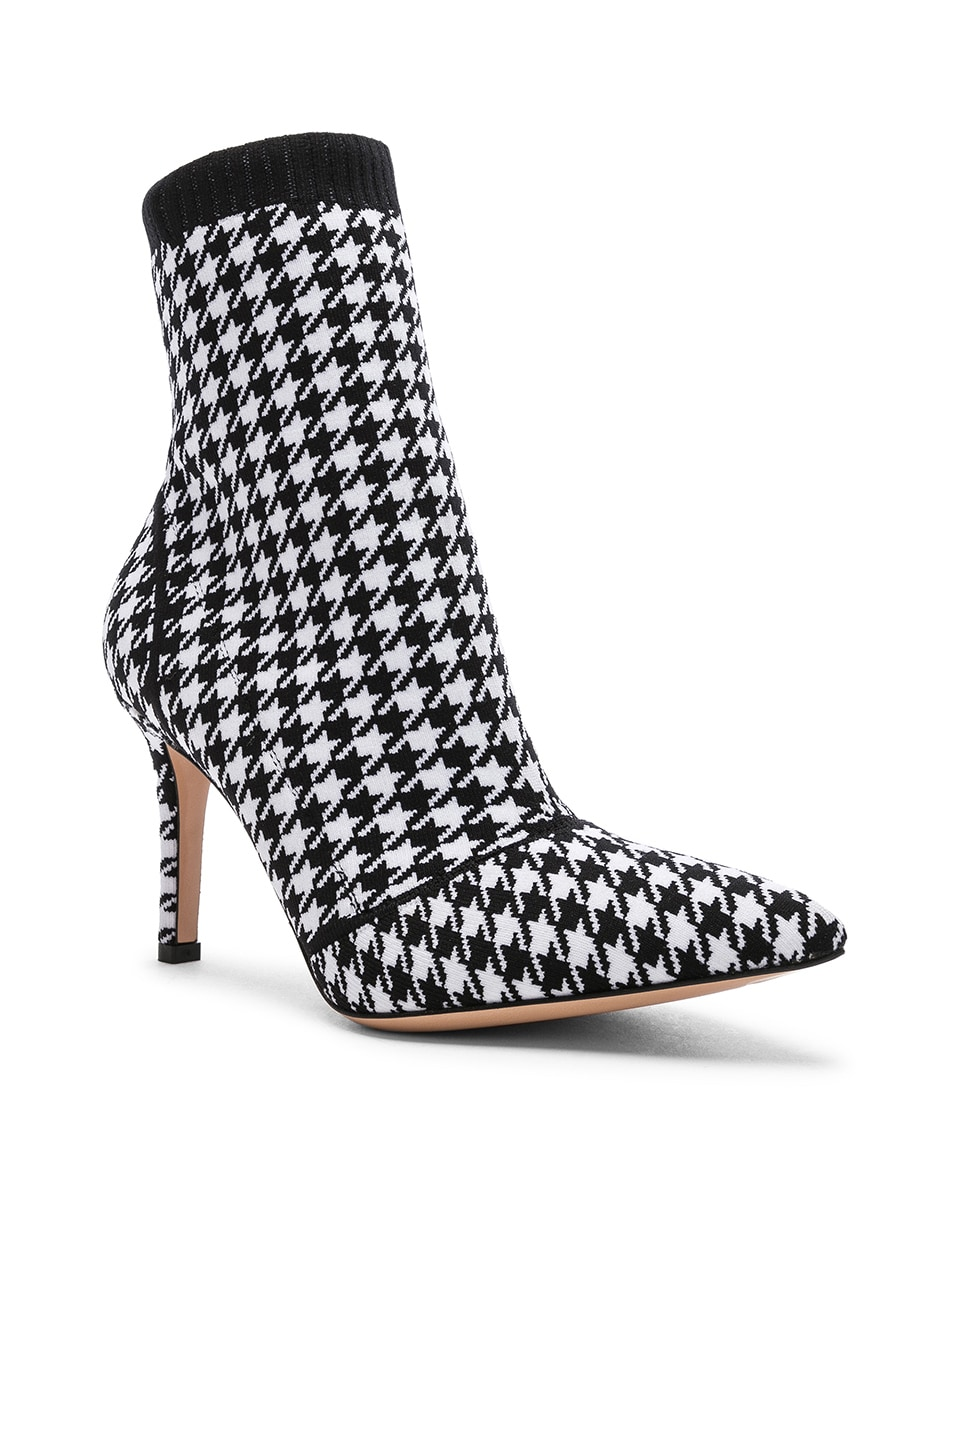 Image 2 of Gianvito Rossi Houndstooth Knit Ankle Boots in White & Black